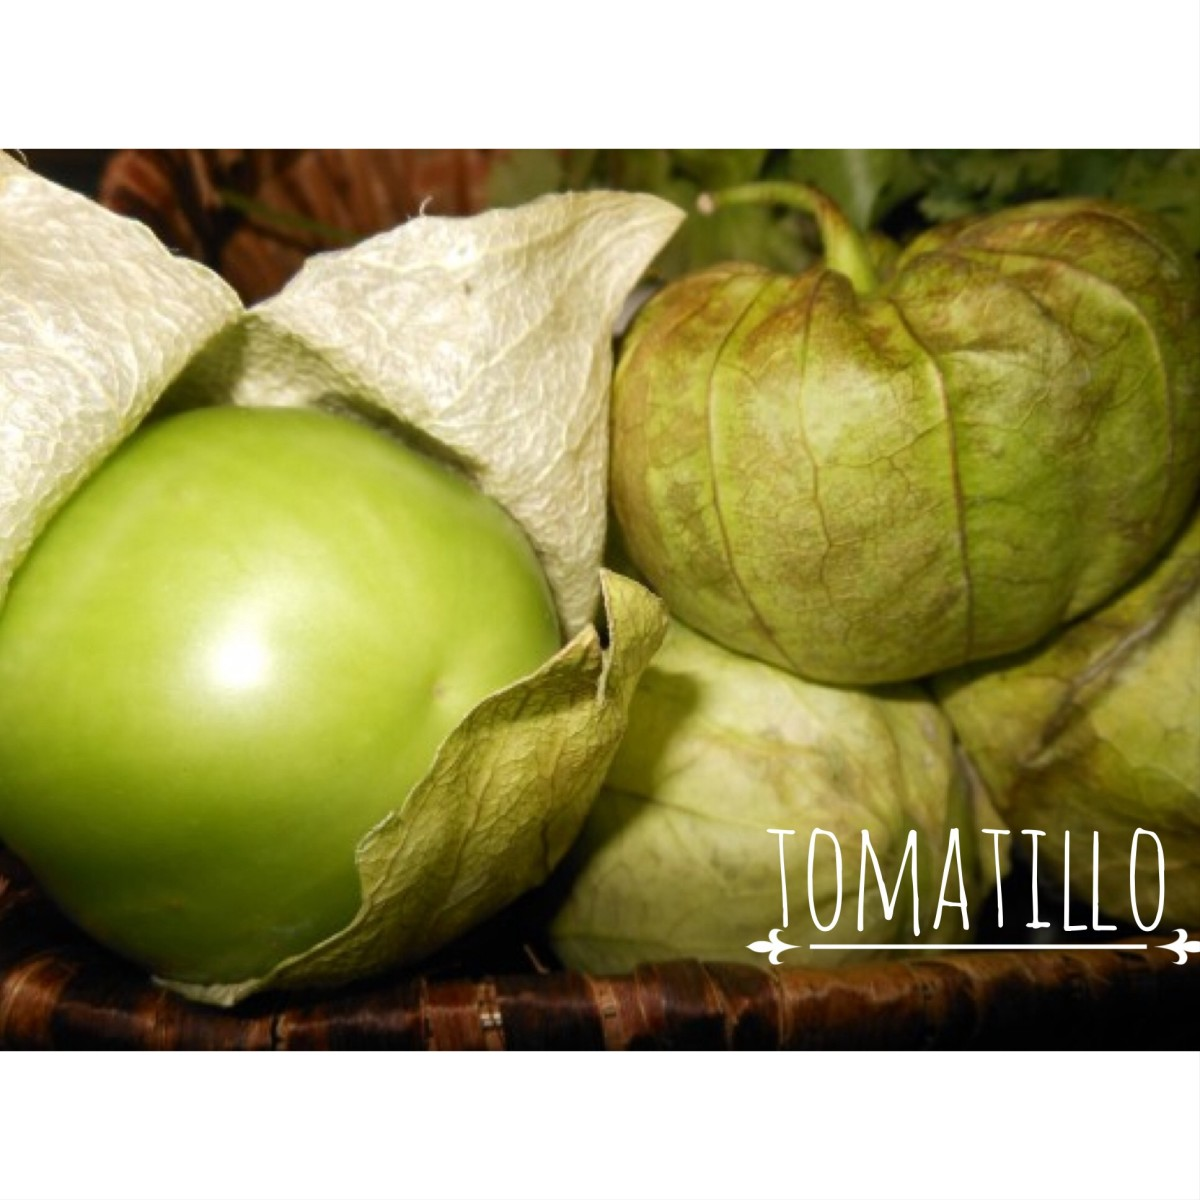 The tomatillo (toe-ma-tea-o) is of Mexican origin and is also grown in areas of South Texas.